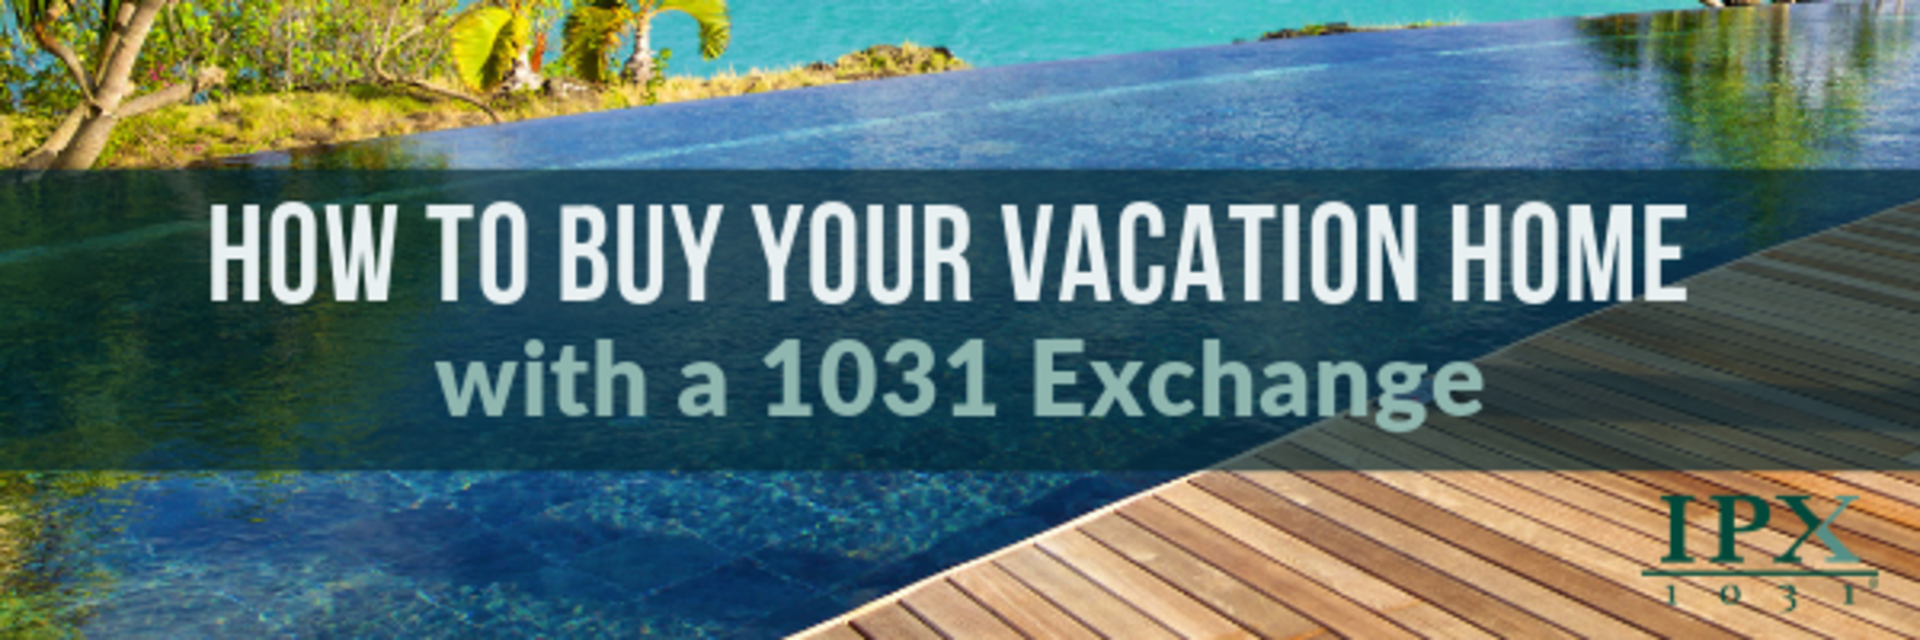 How to Buy Your Vacation Home with a 1031 Exchange!